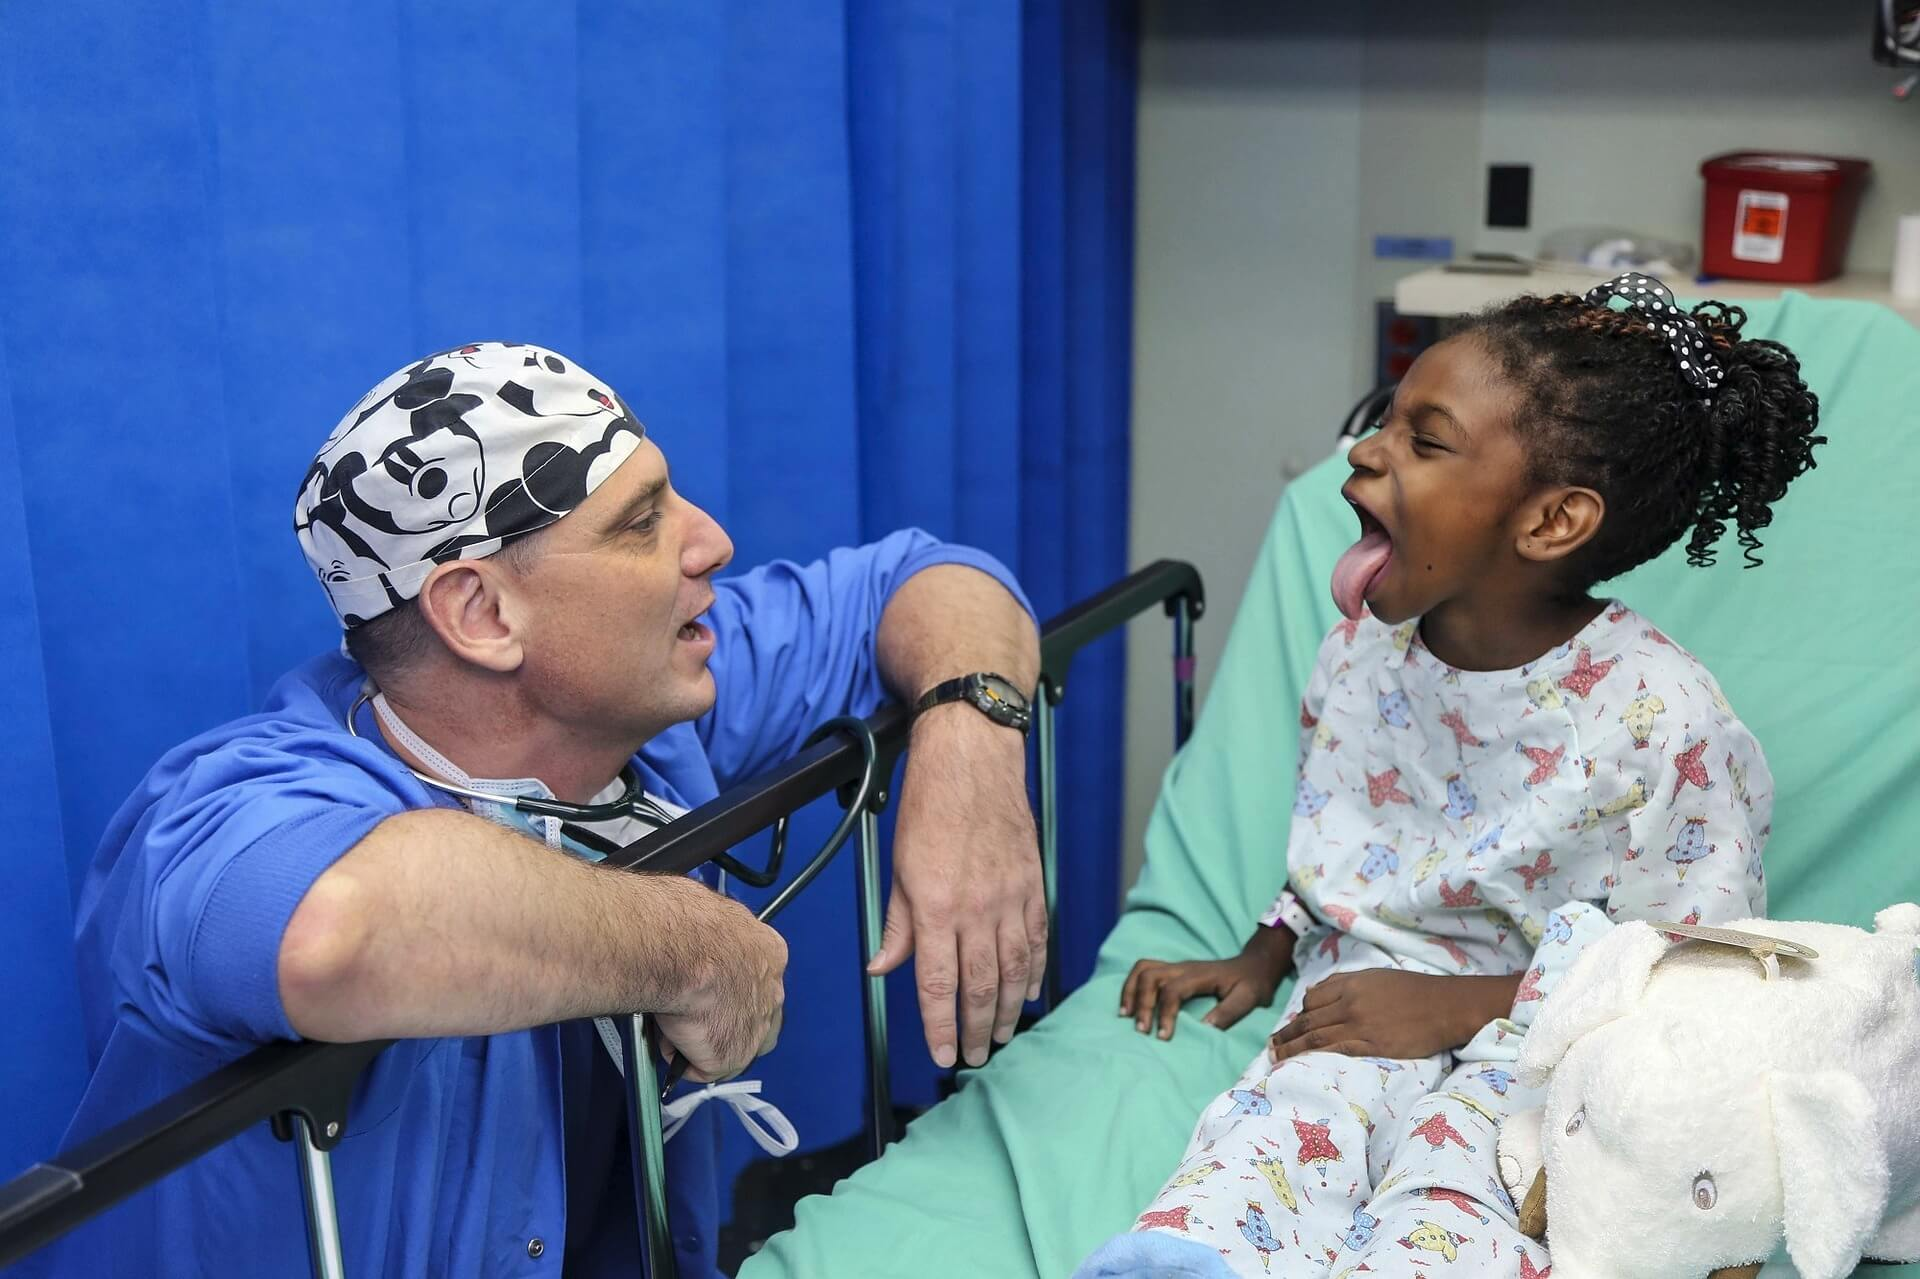 doctor with a young patient